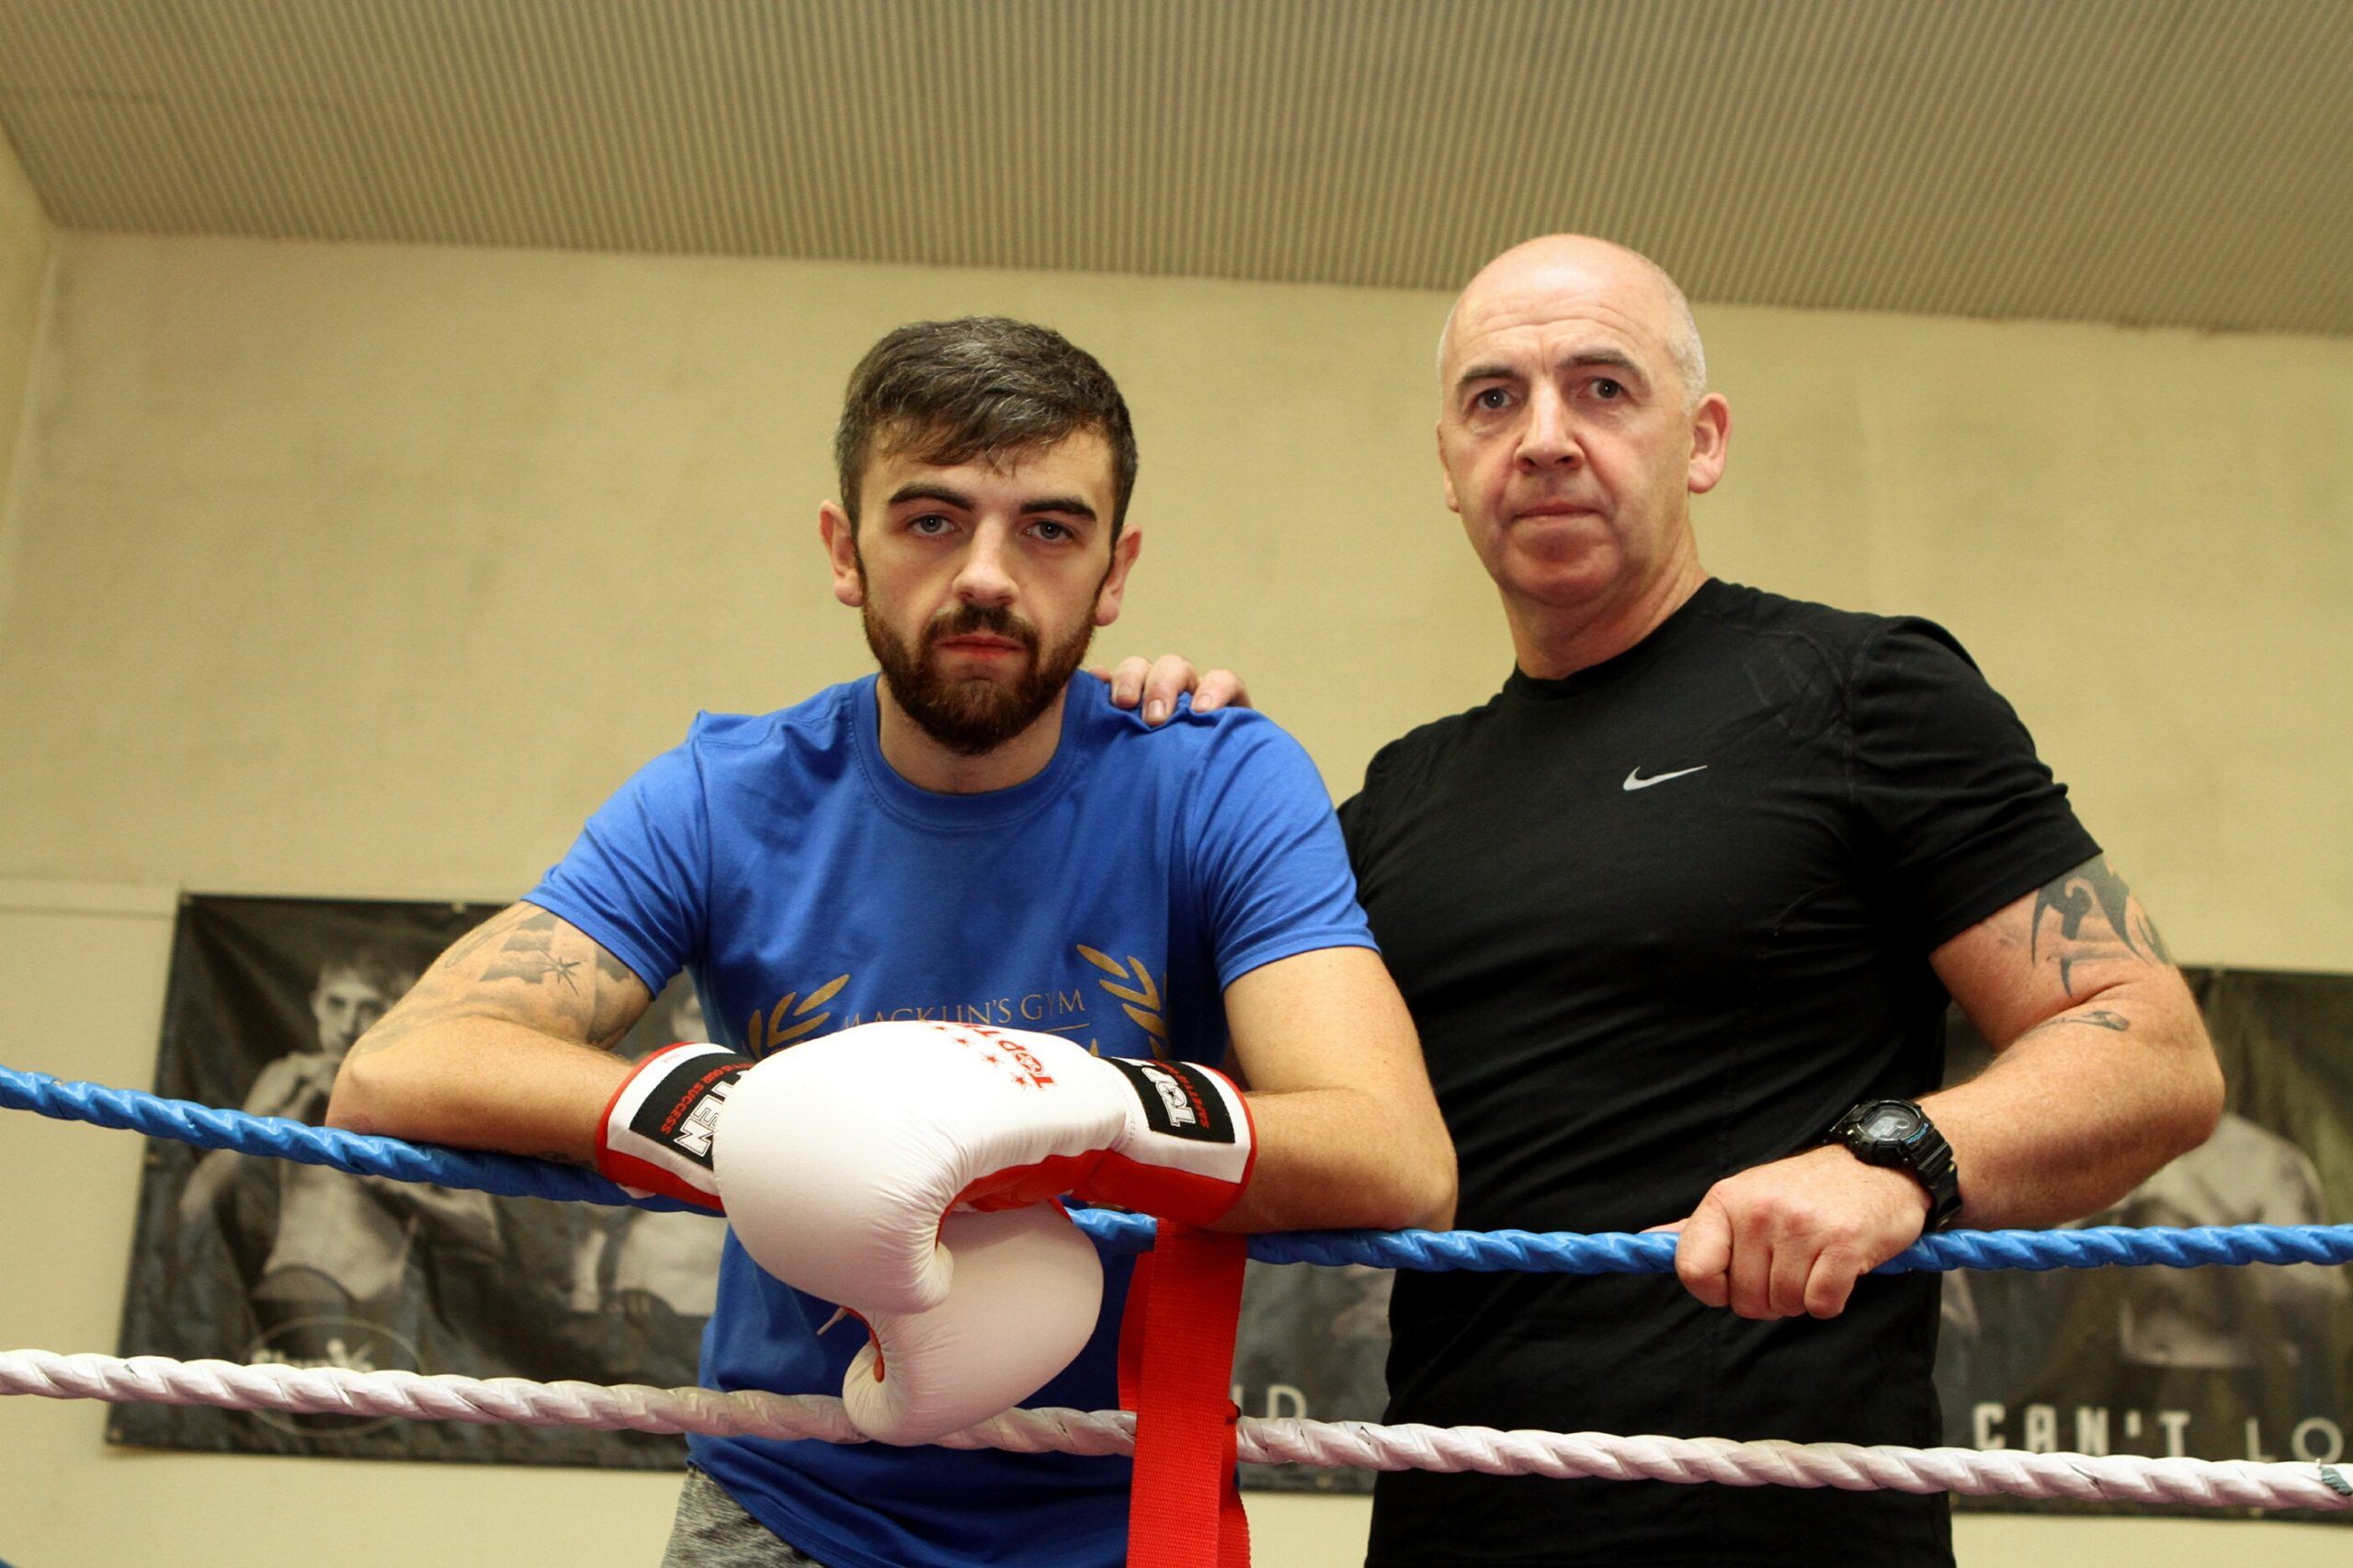 Boxing coach Paul Kean Senior and his son, professional boxer Paul Kean Jr, have been running online classes for their regular gym patrons.  (Picture: DCT Media/ Dougie Nicolson)